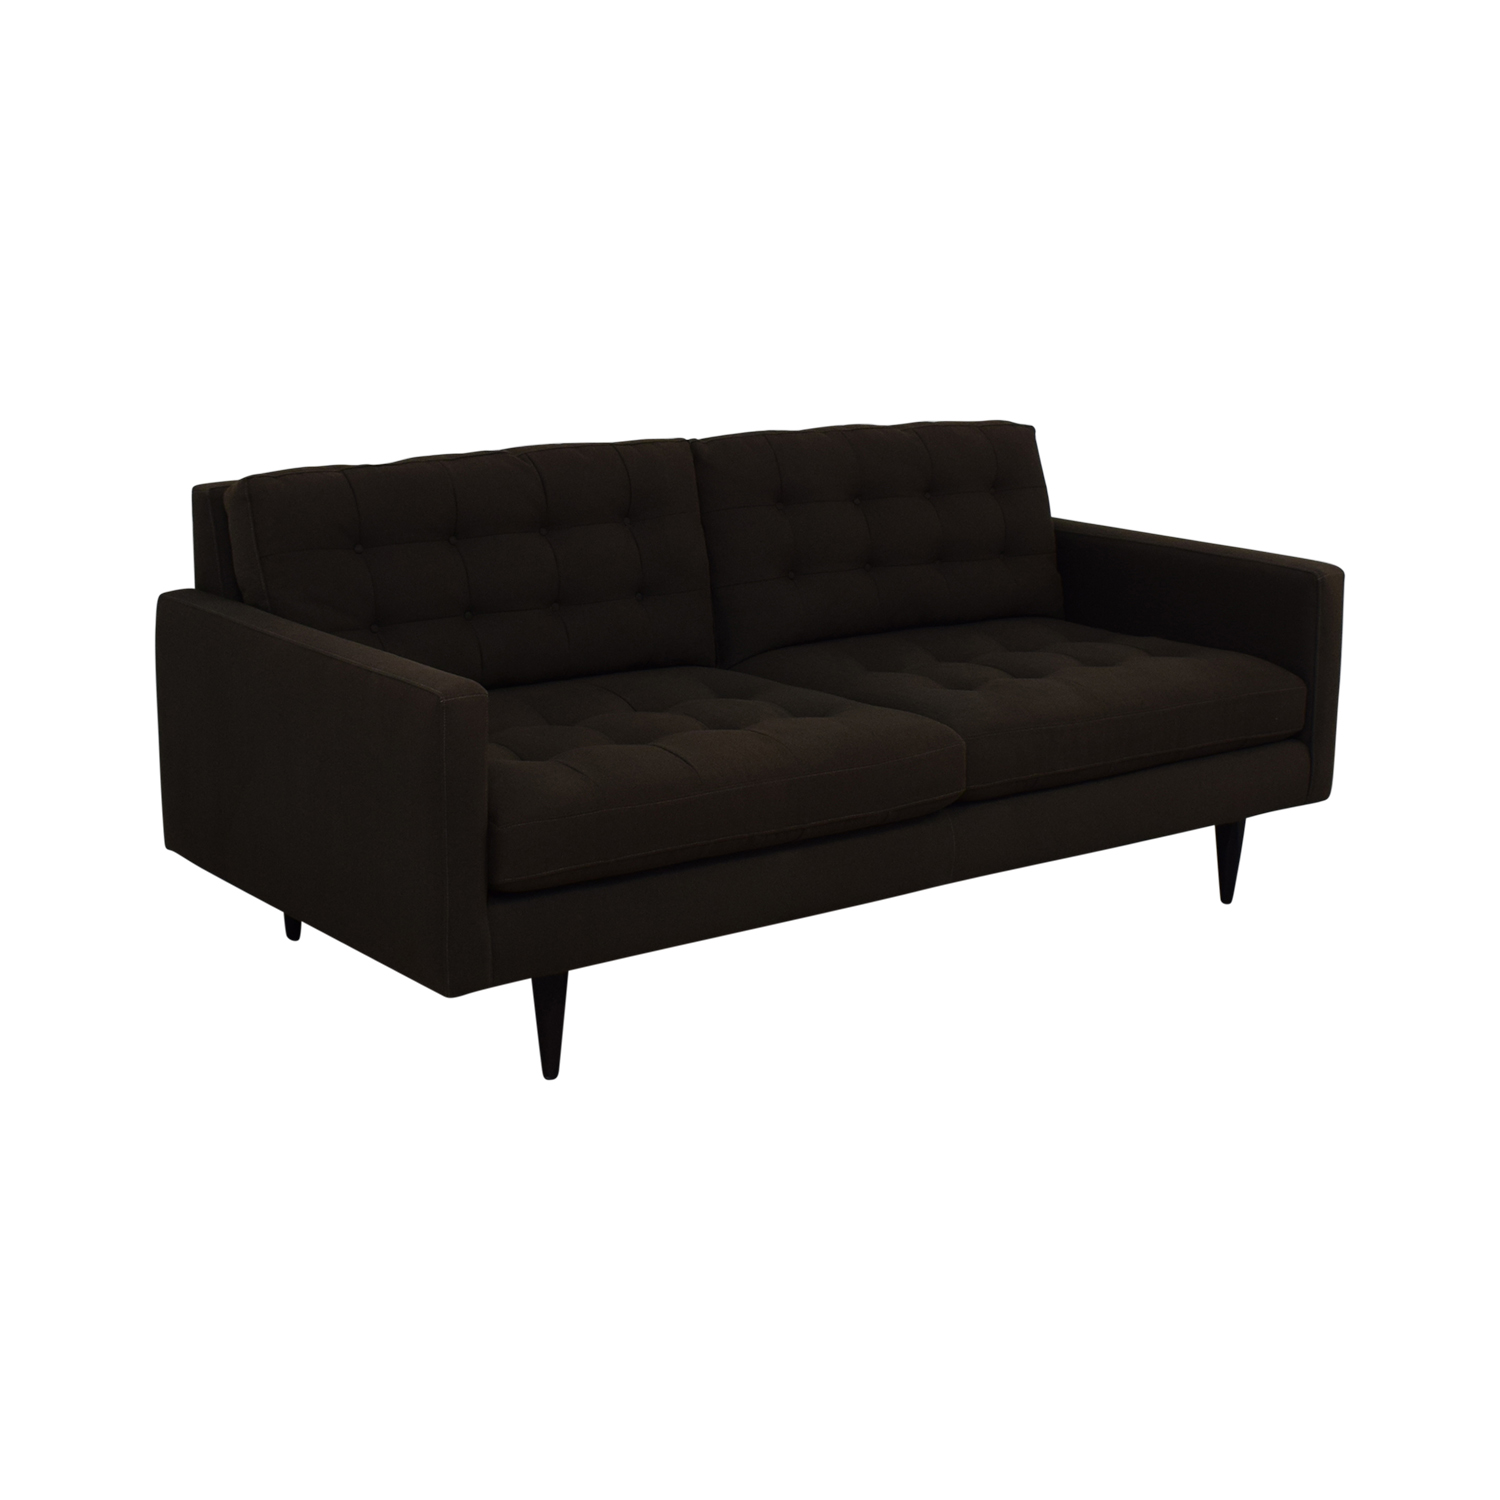 Crate & Barrel Crate & Barrel Petrie Midcentury Sofa nyc